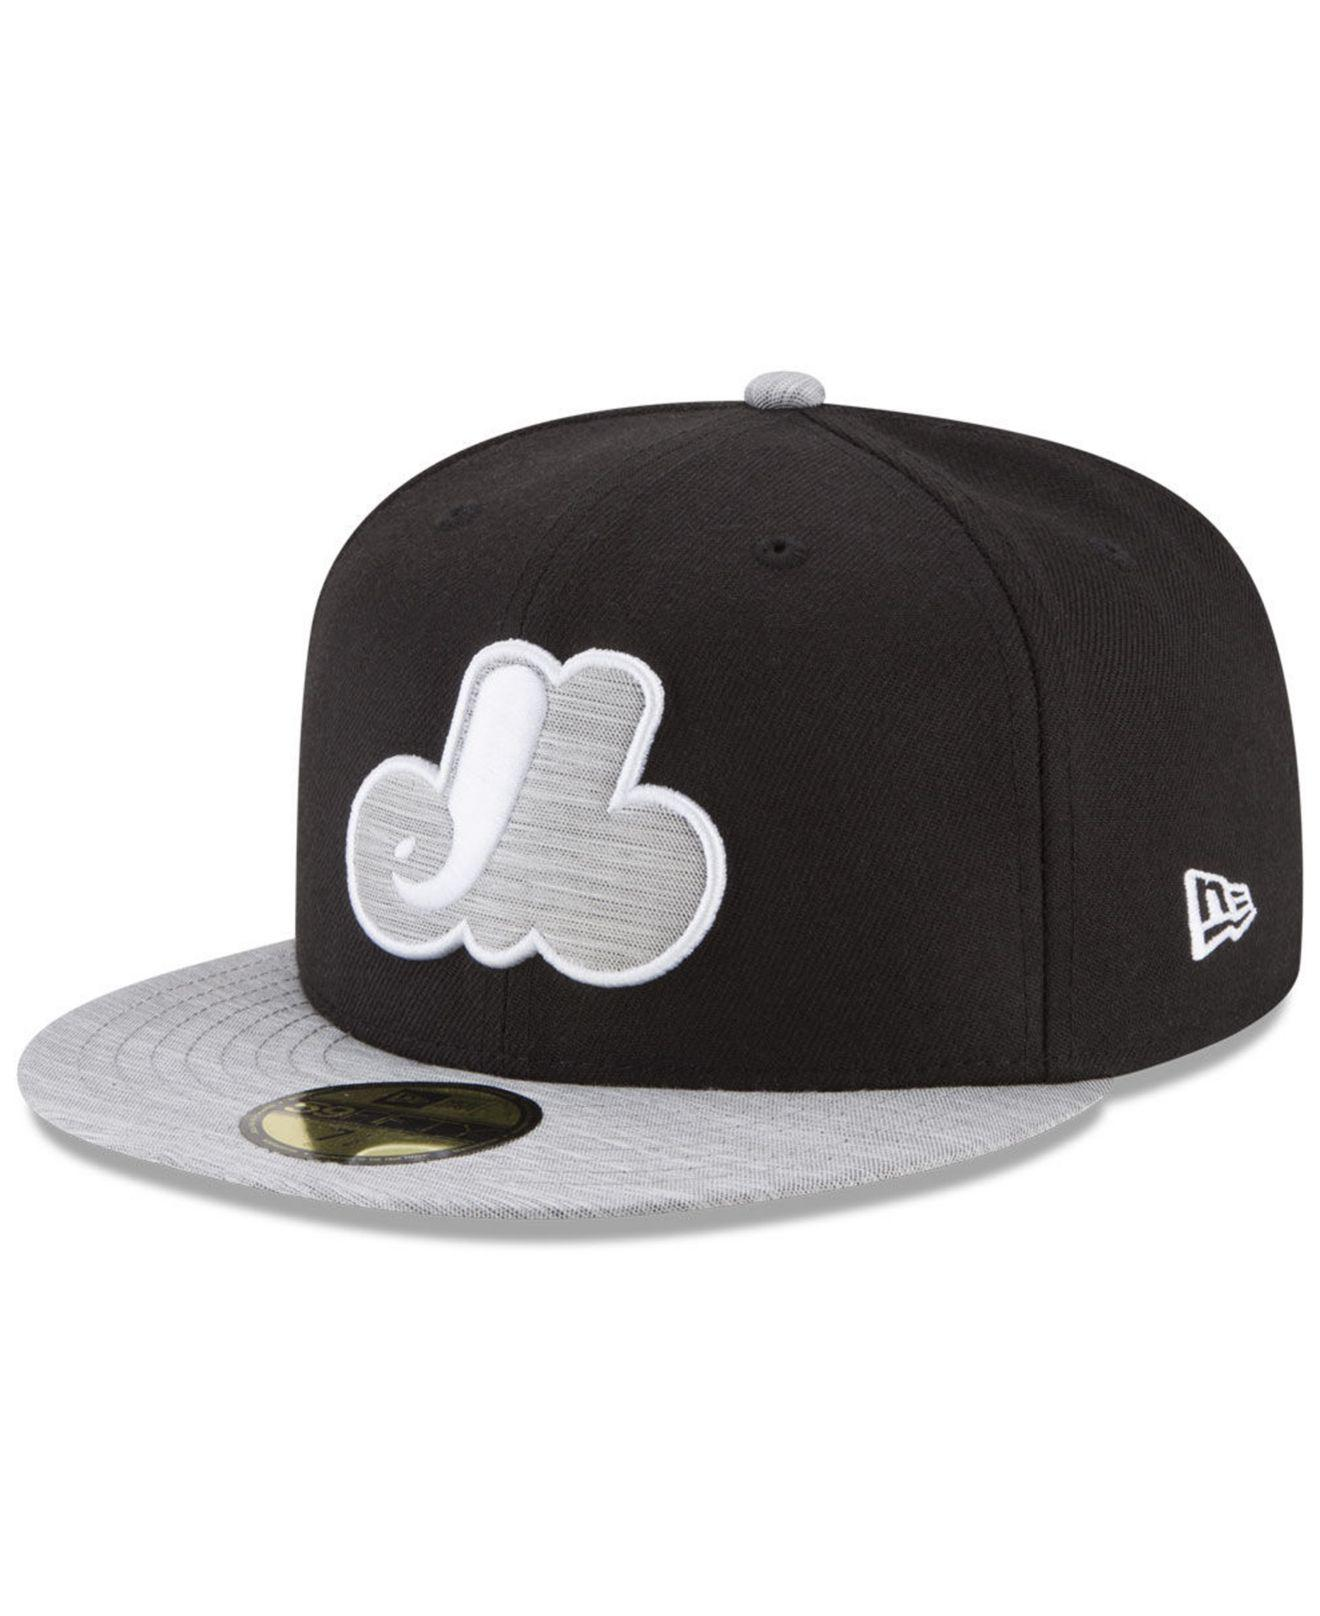 ef2f754caba KTZ - Montreal Expos Black Heather Coop 59fifty Fitted Cap for Men - Lyst.  View fullscreen